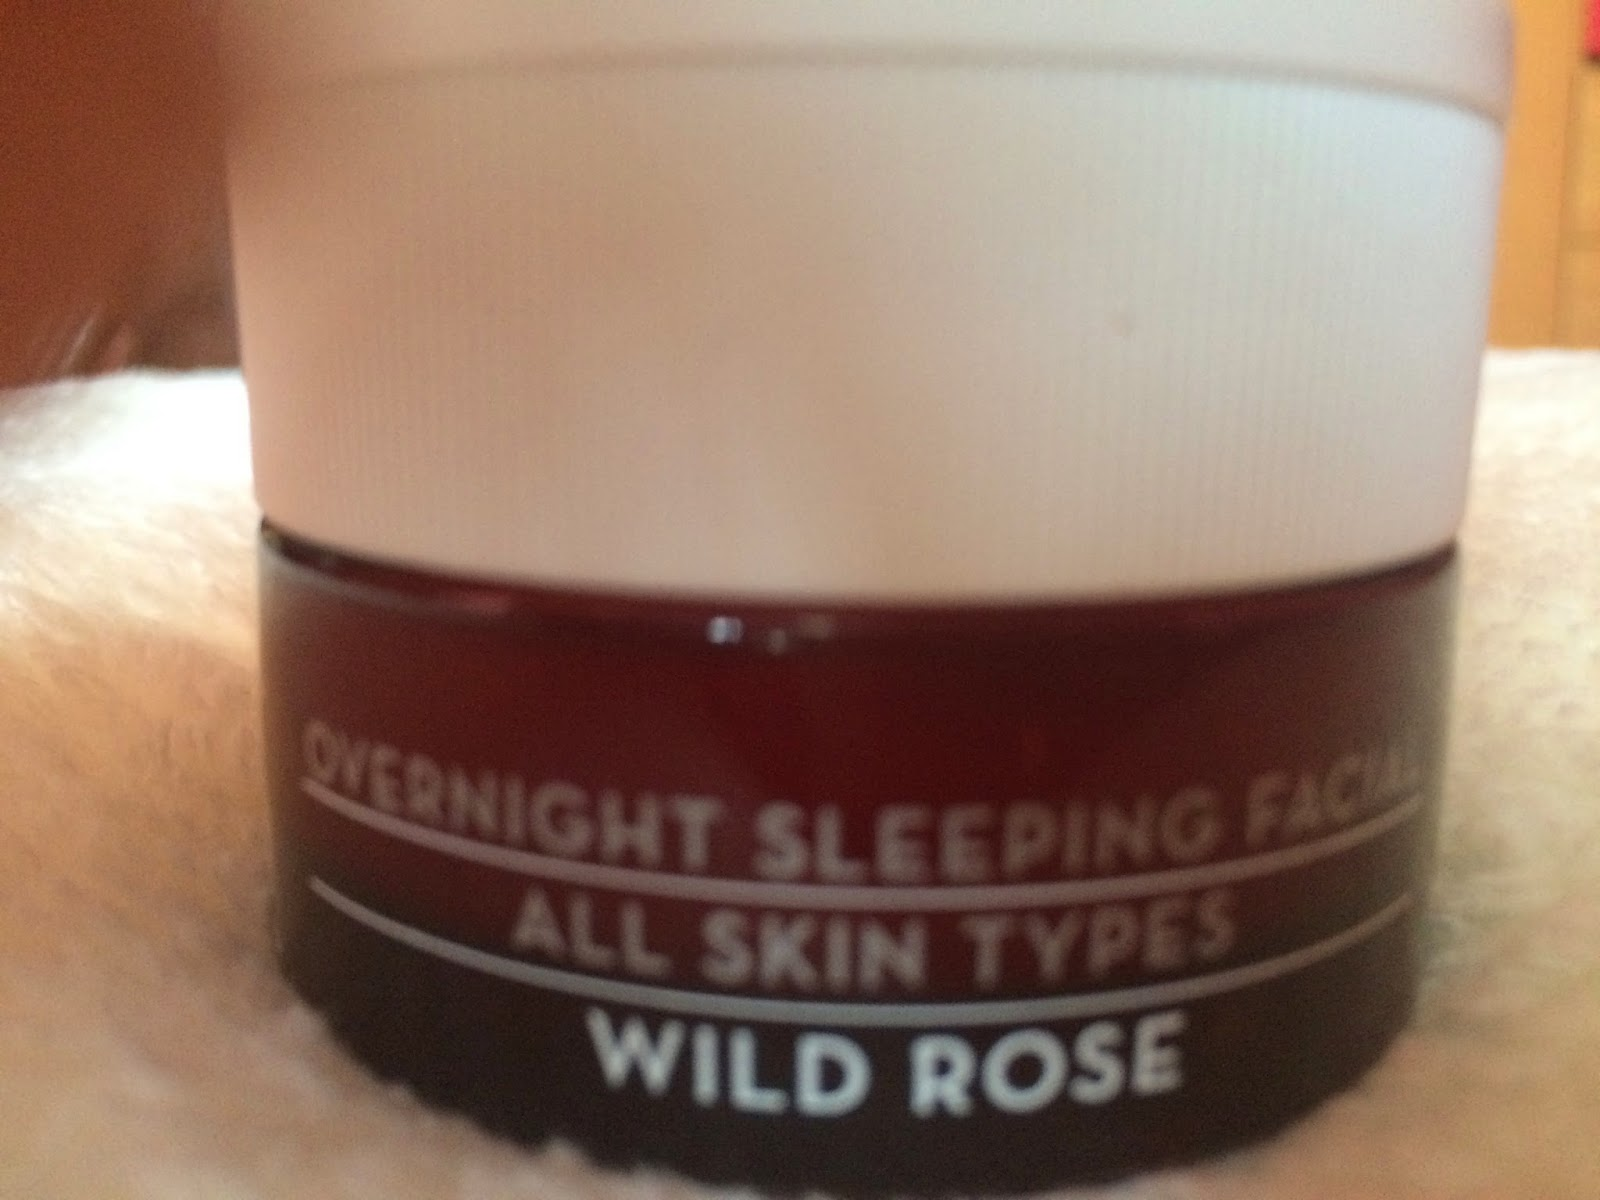 wild rose advanced repair sleeping facial by Korres review bubblybeauty135